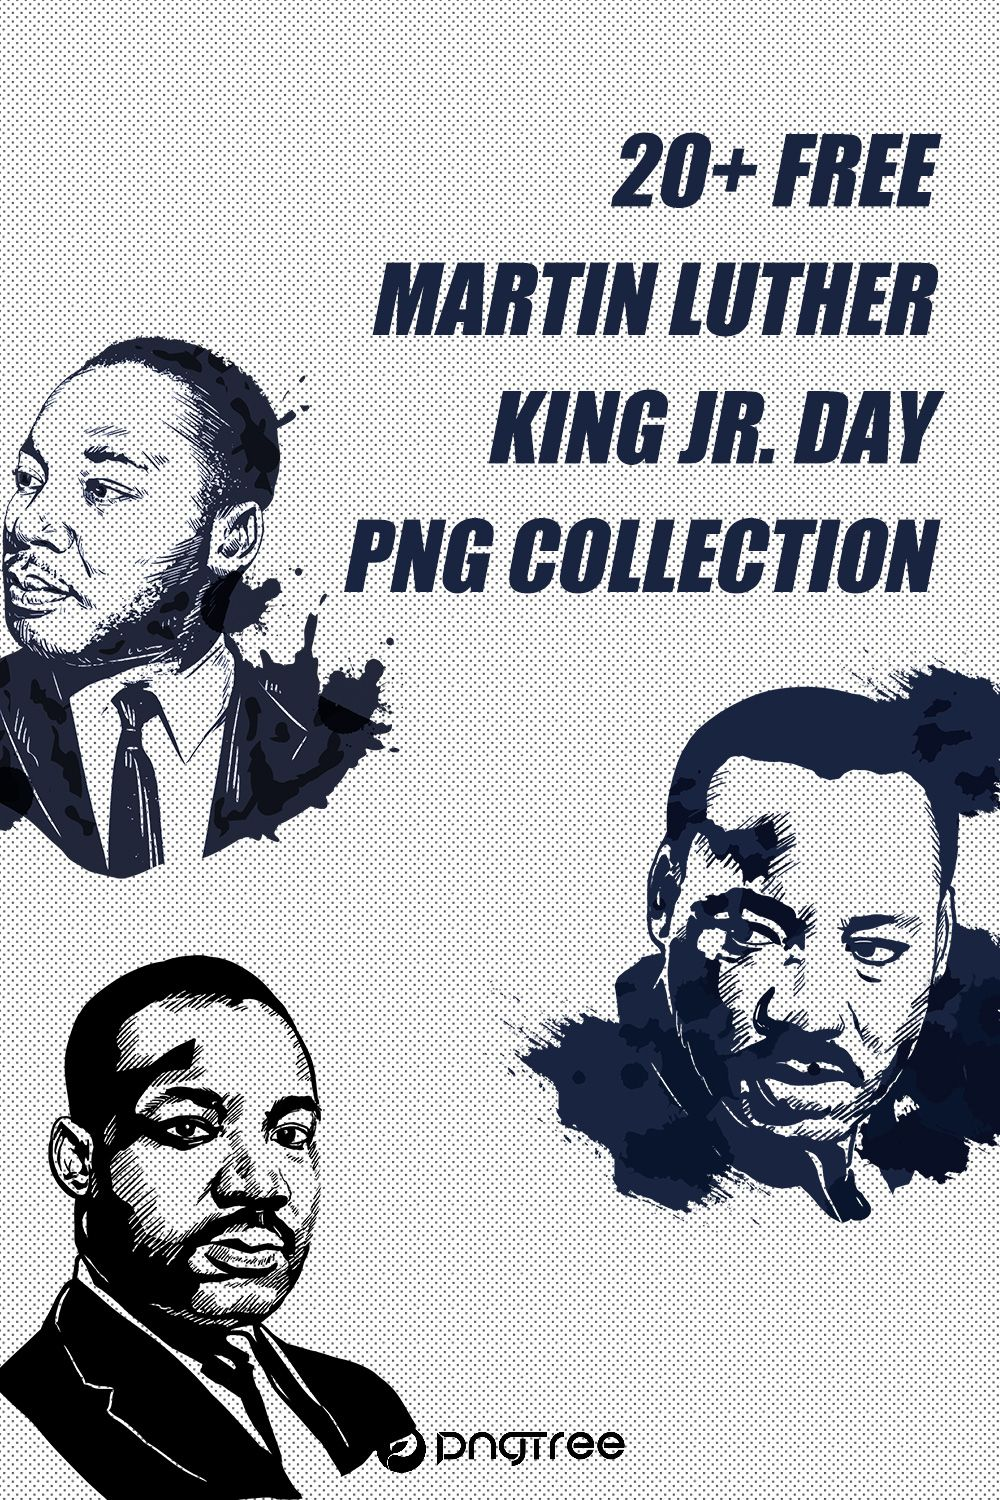 Martin Luther King Jr Day In 2021 Martin Luther King Jr Free Graphic Design Cute Comics